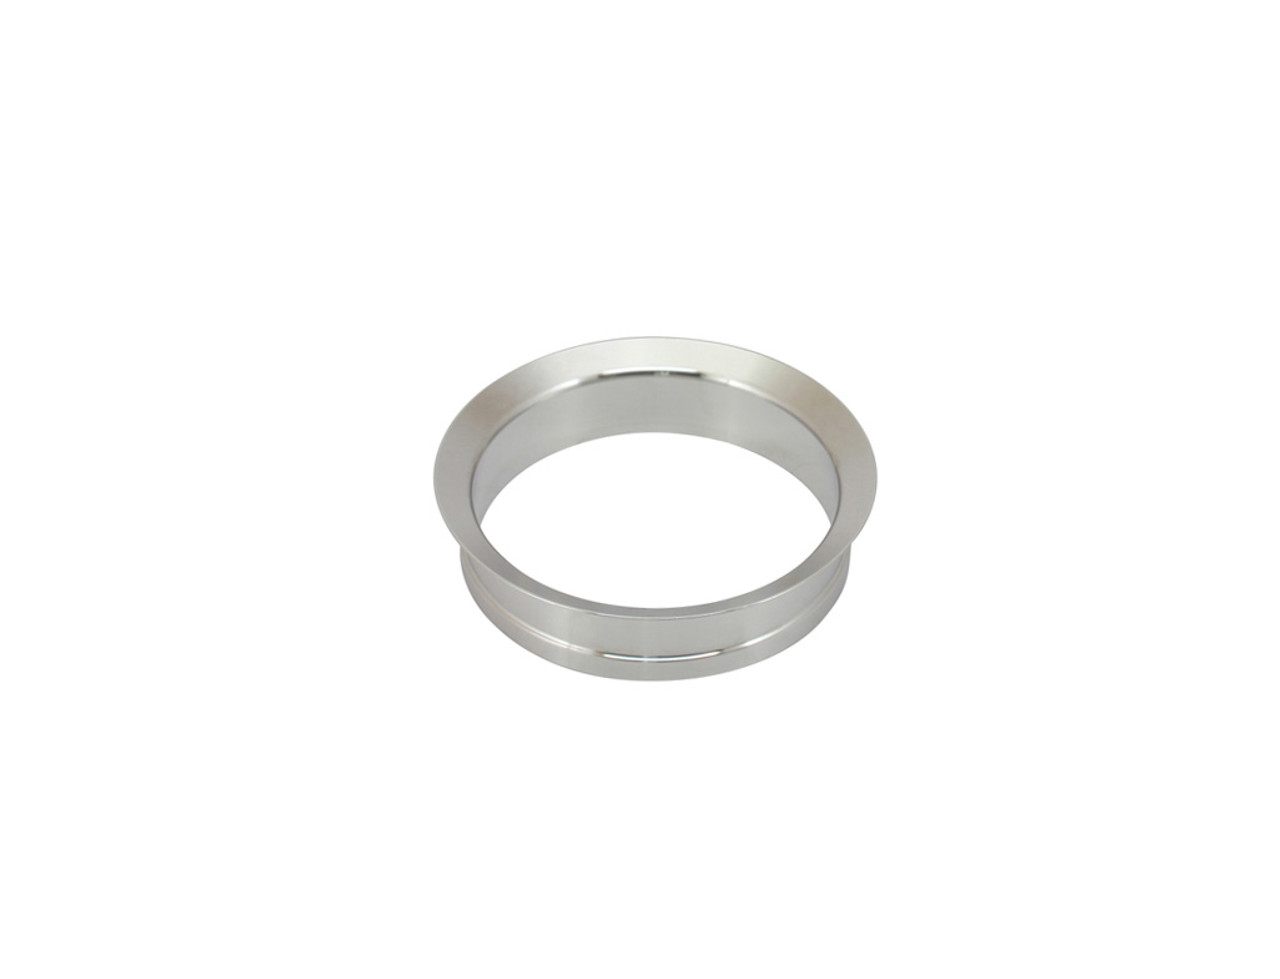 """4.21"""" Marmon V-Band Turbine Outlet Flange for Borg Warner S200 and S300 to 3.5"""" or 4"""" Tube"""